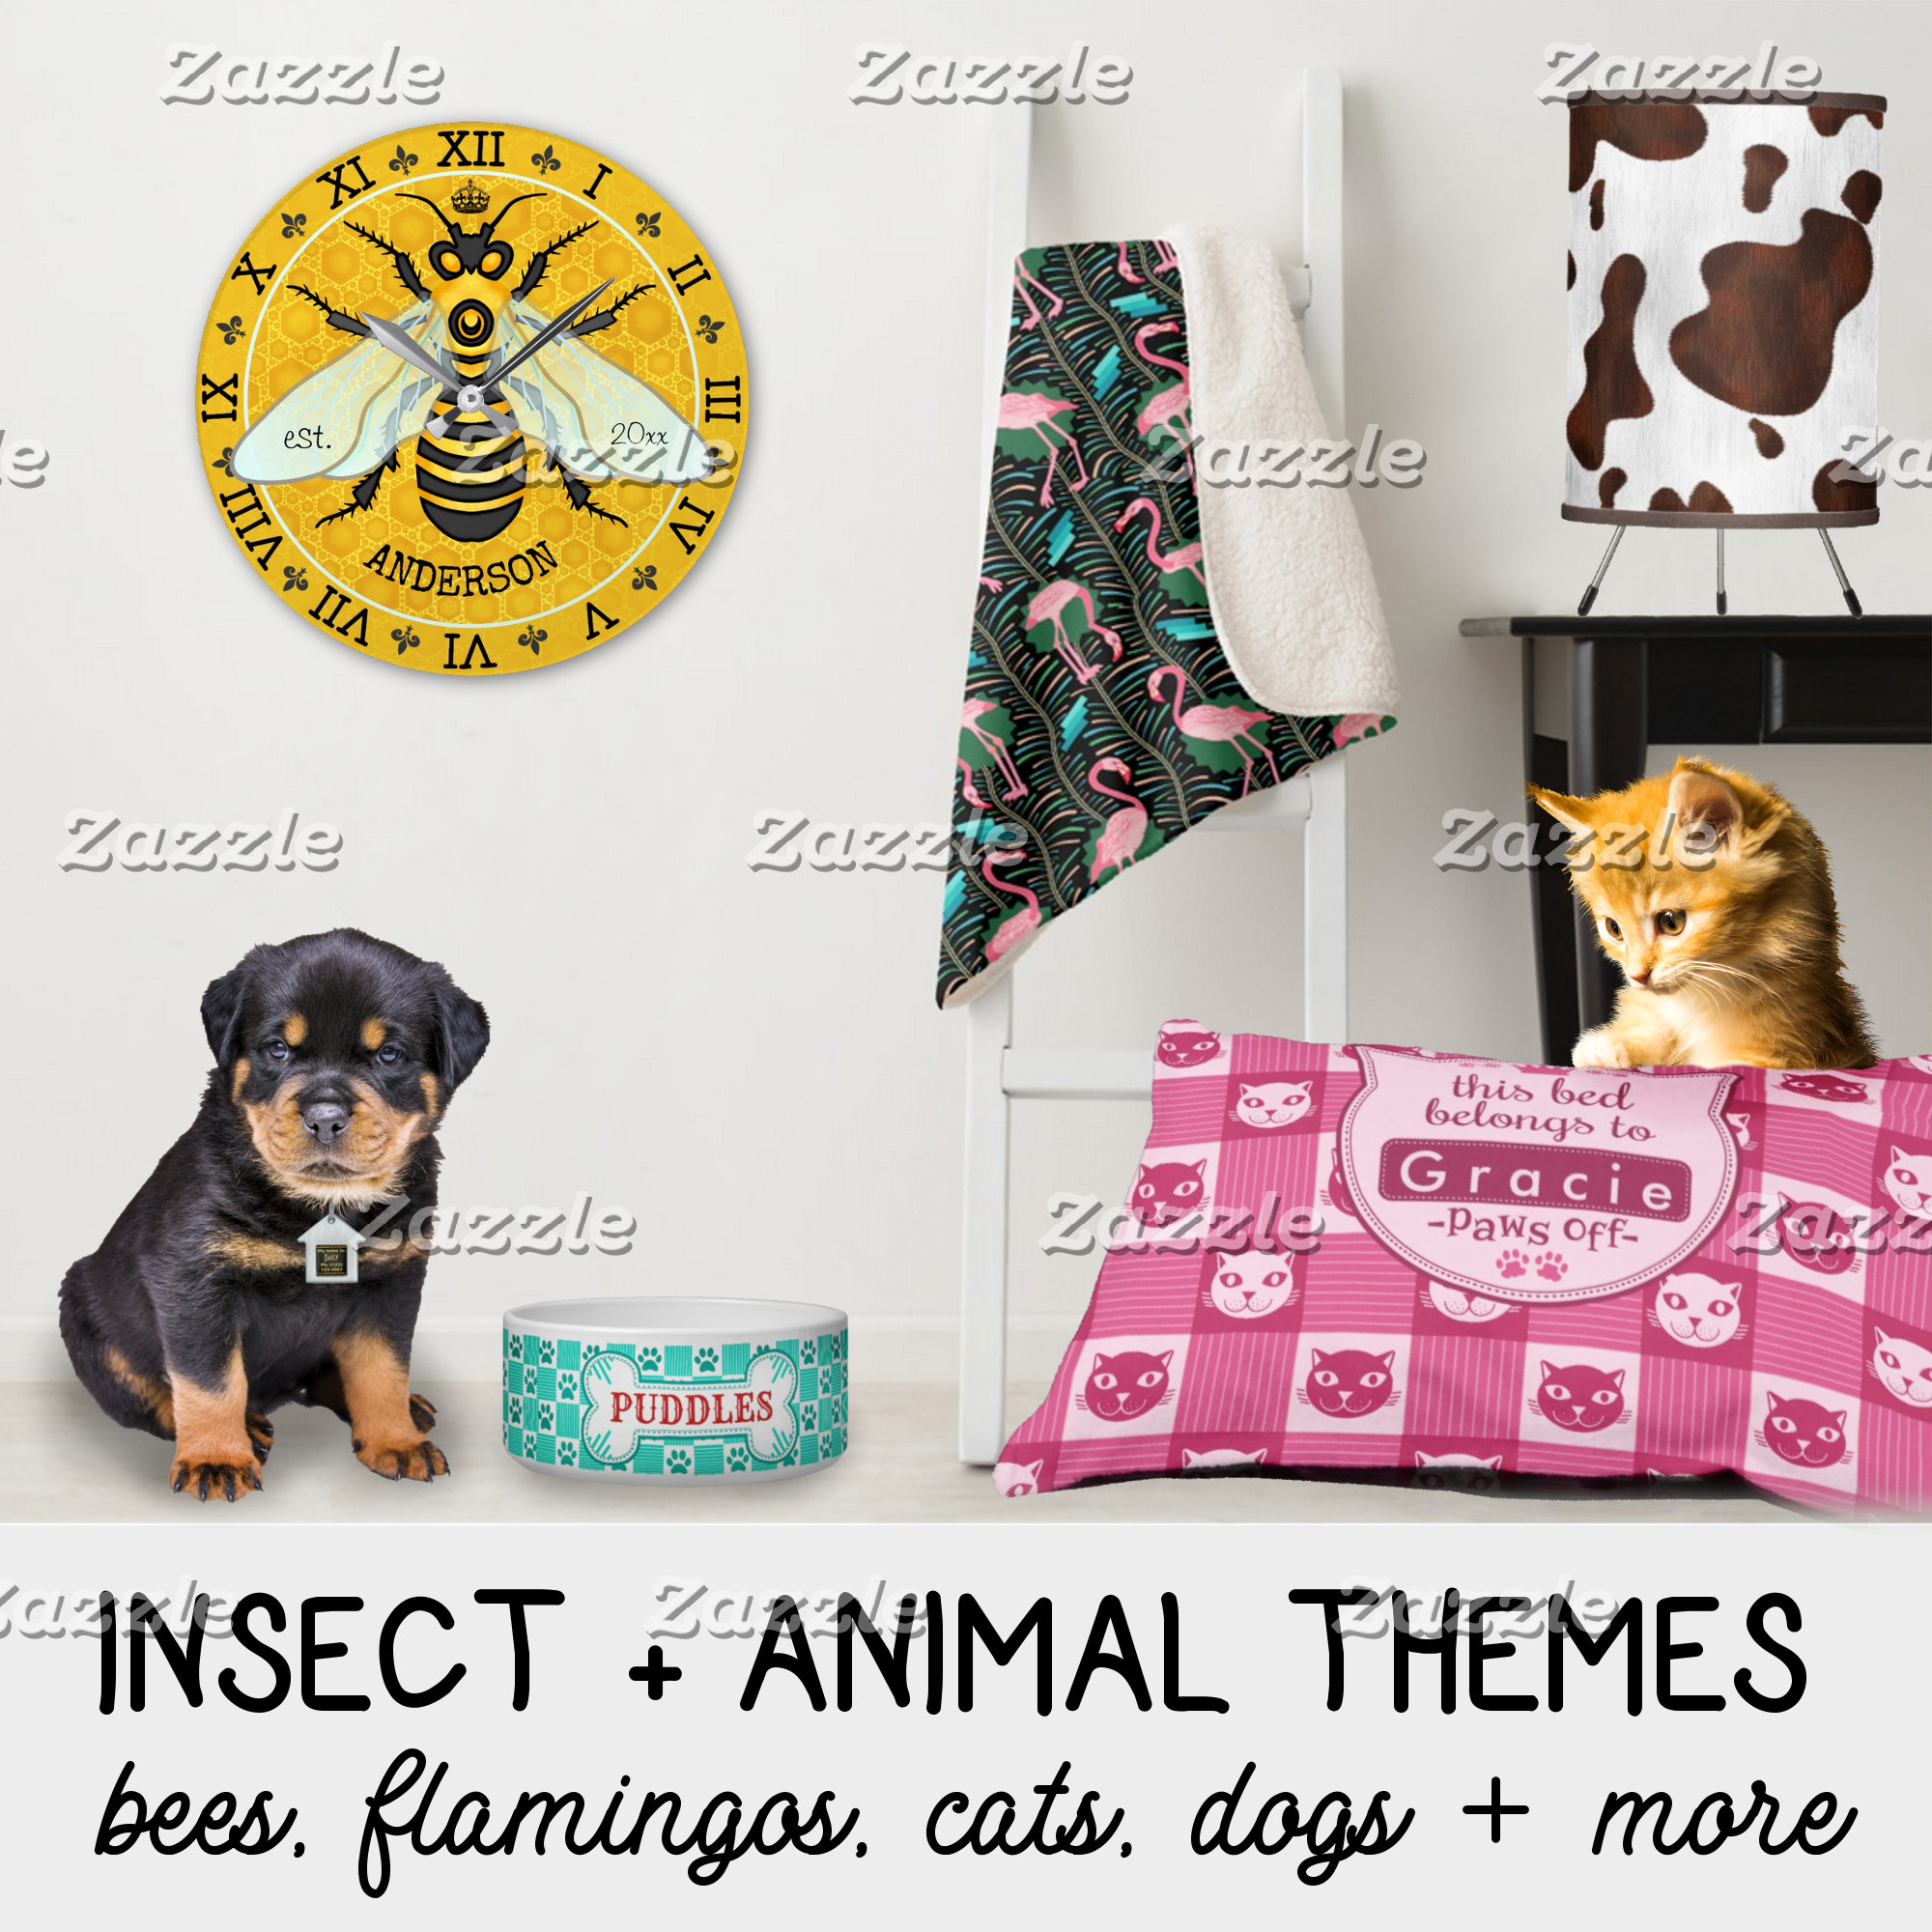 INSECT + ANIMAL THEMES